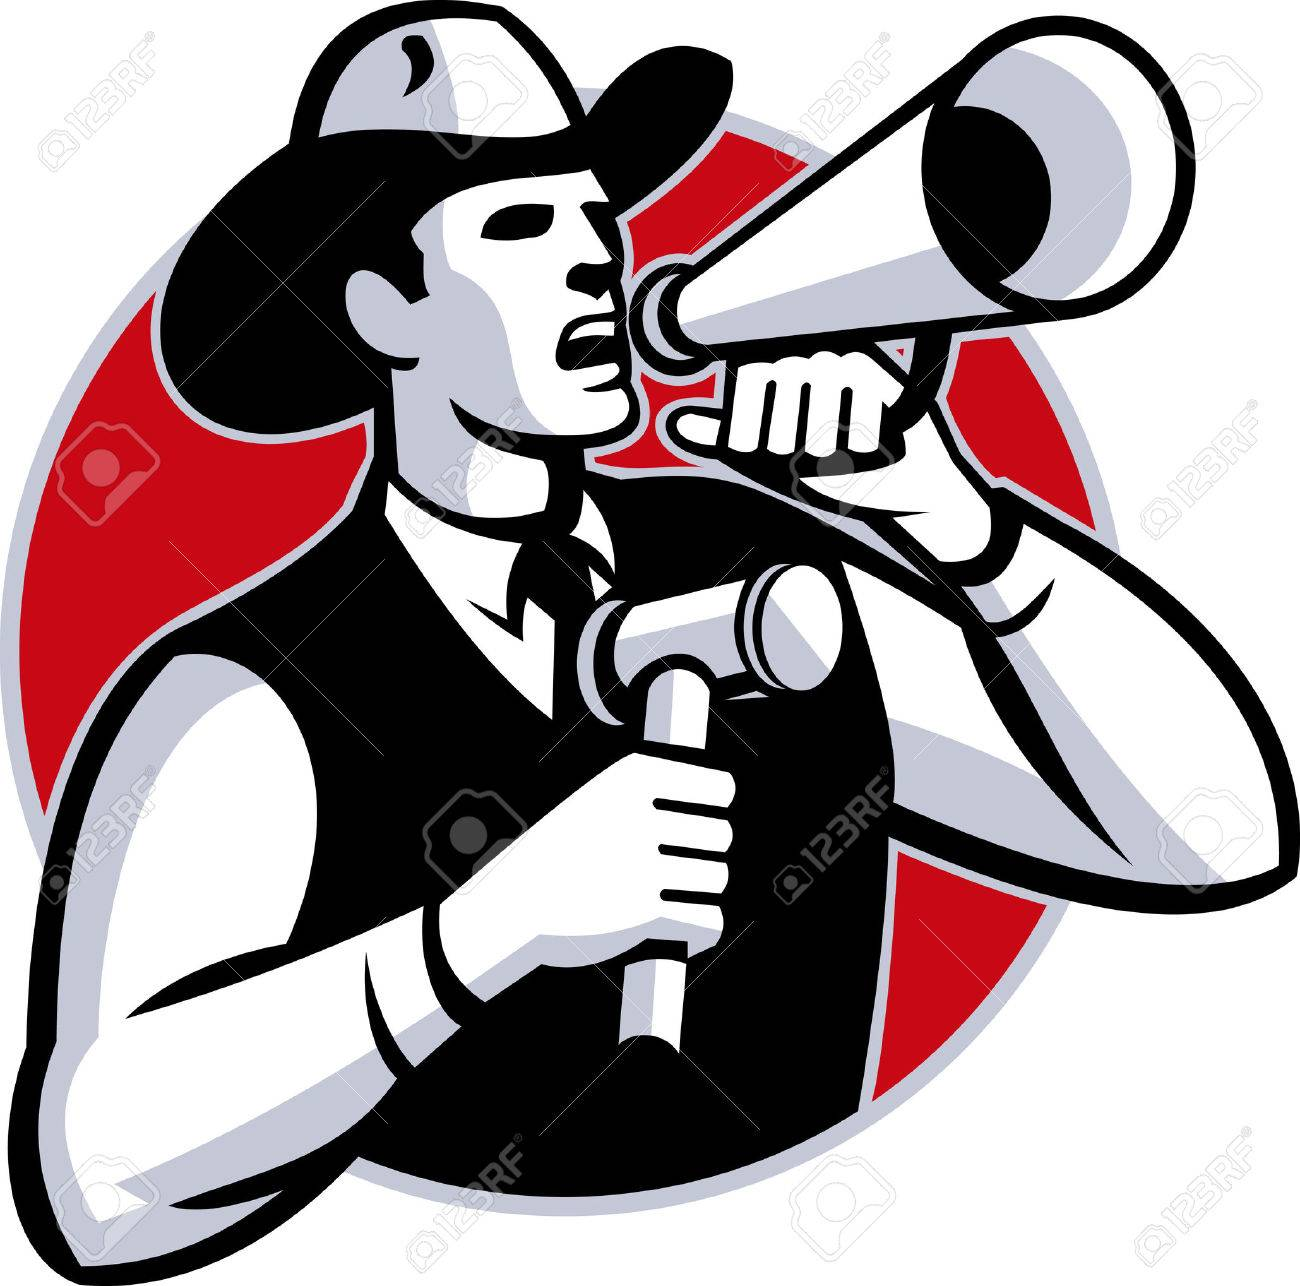 Illustration of a cowboy auctioneer with gavel hammer shouting on bullhorn set inside circle done in retro style. Stock Vector - 35306060